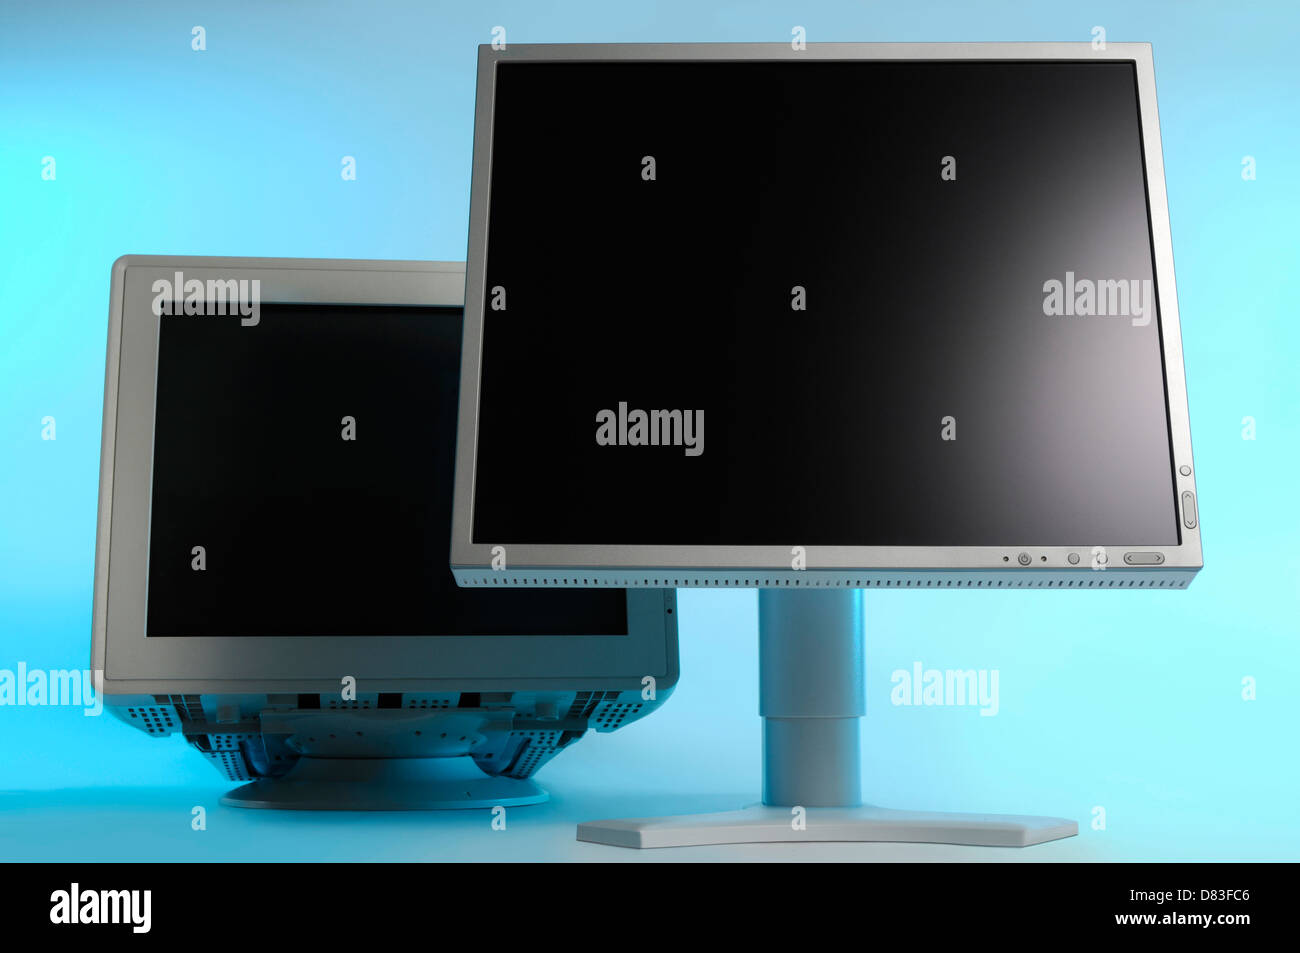 New LCD display and an old CRT monitor behind it. Technology, computers and electronics concept. - Stock Image